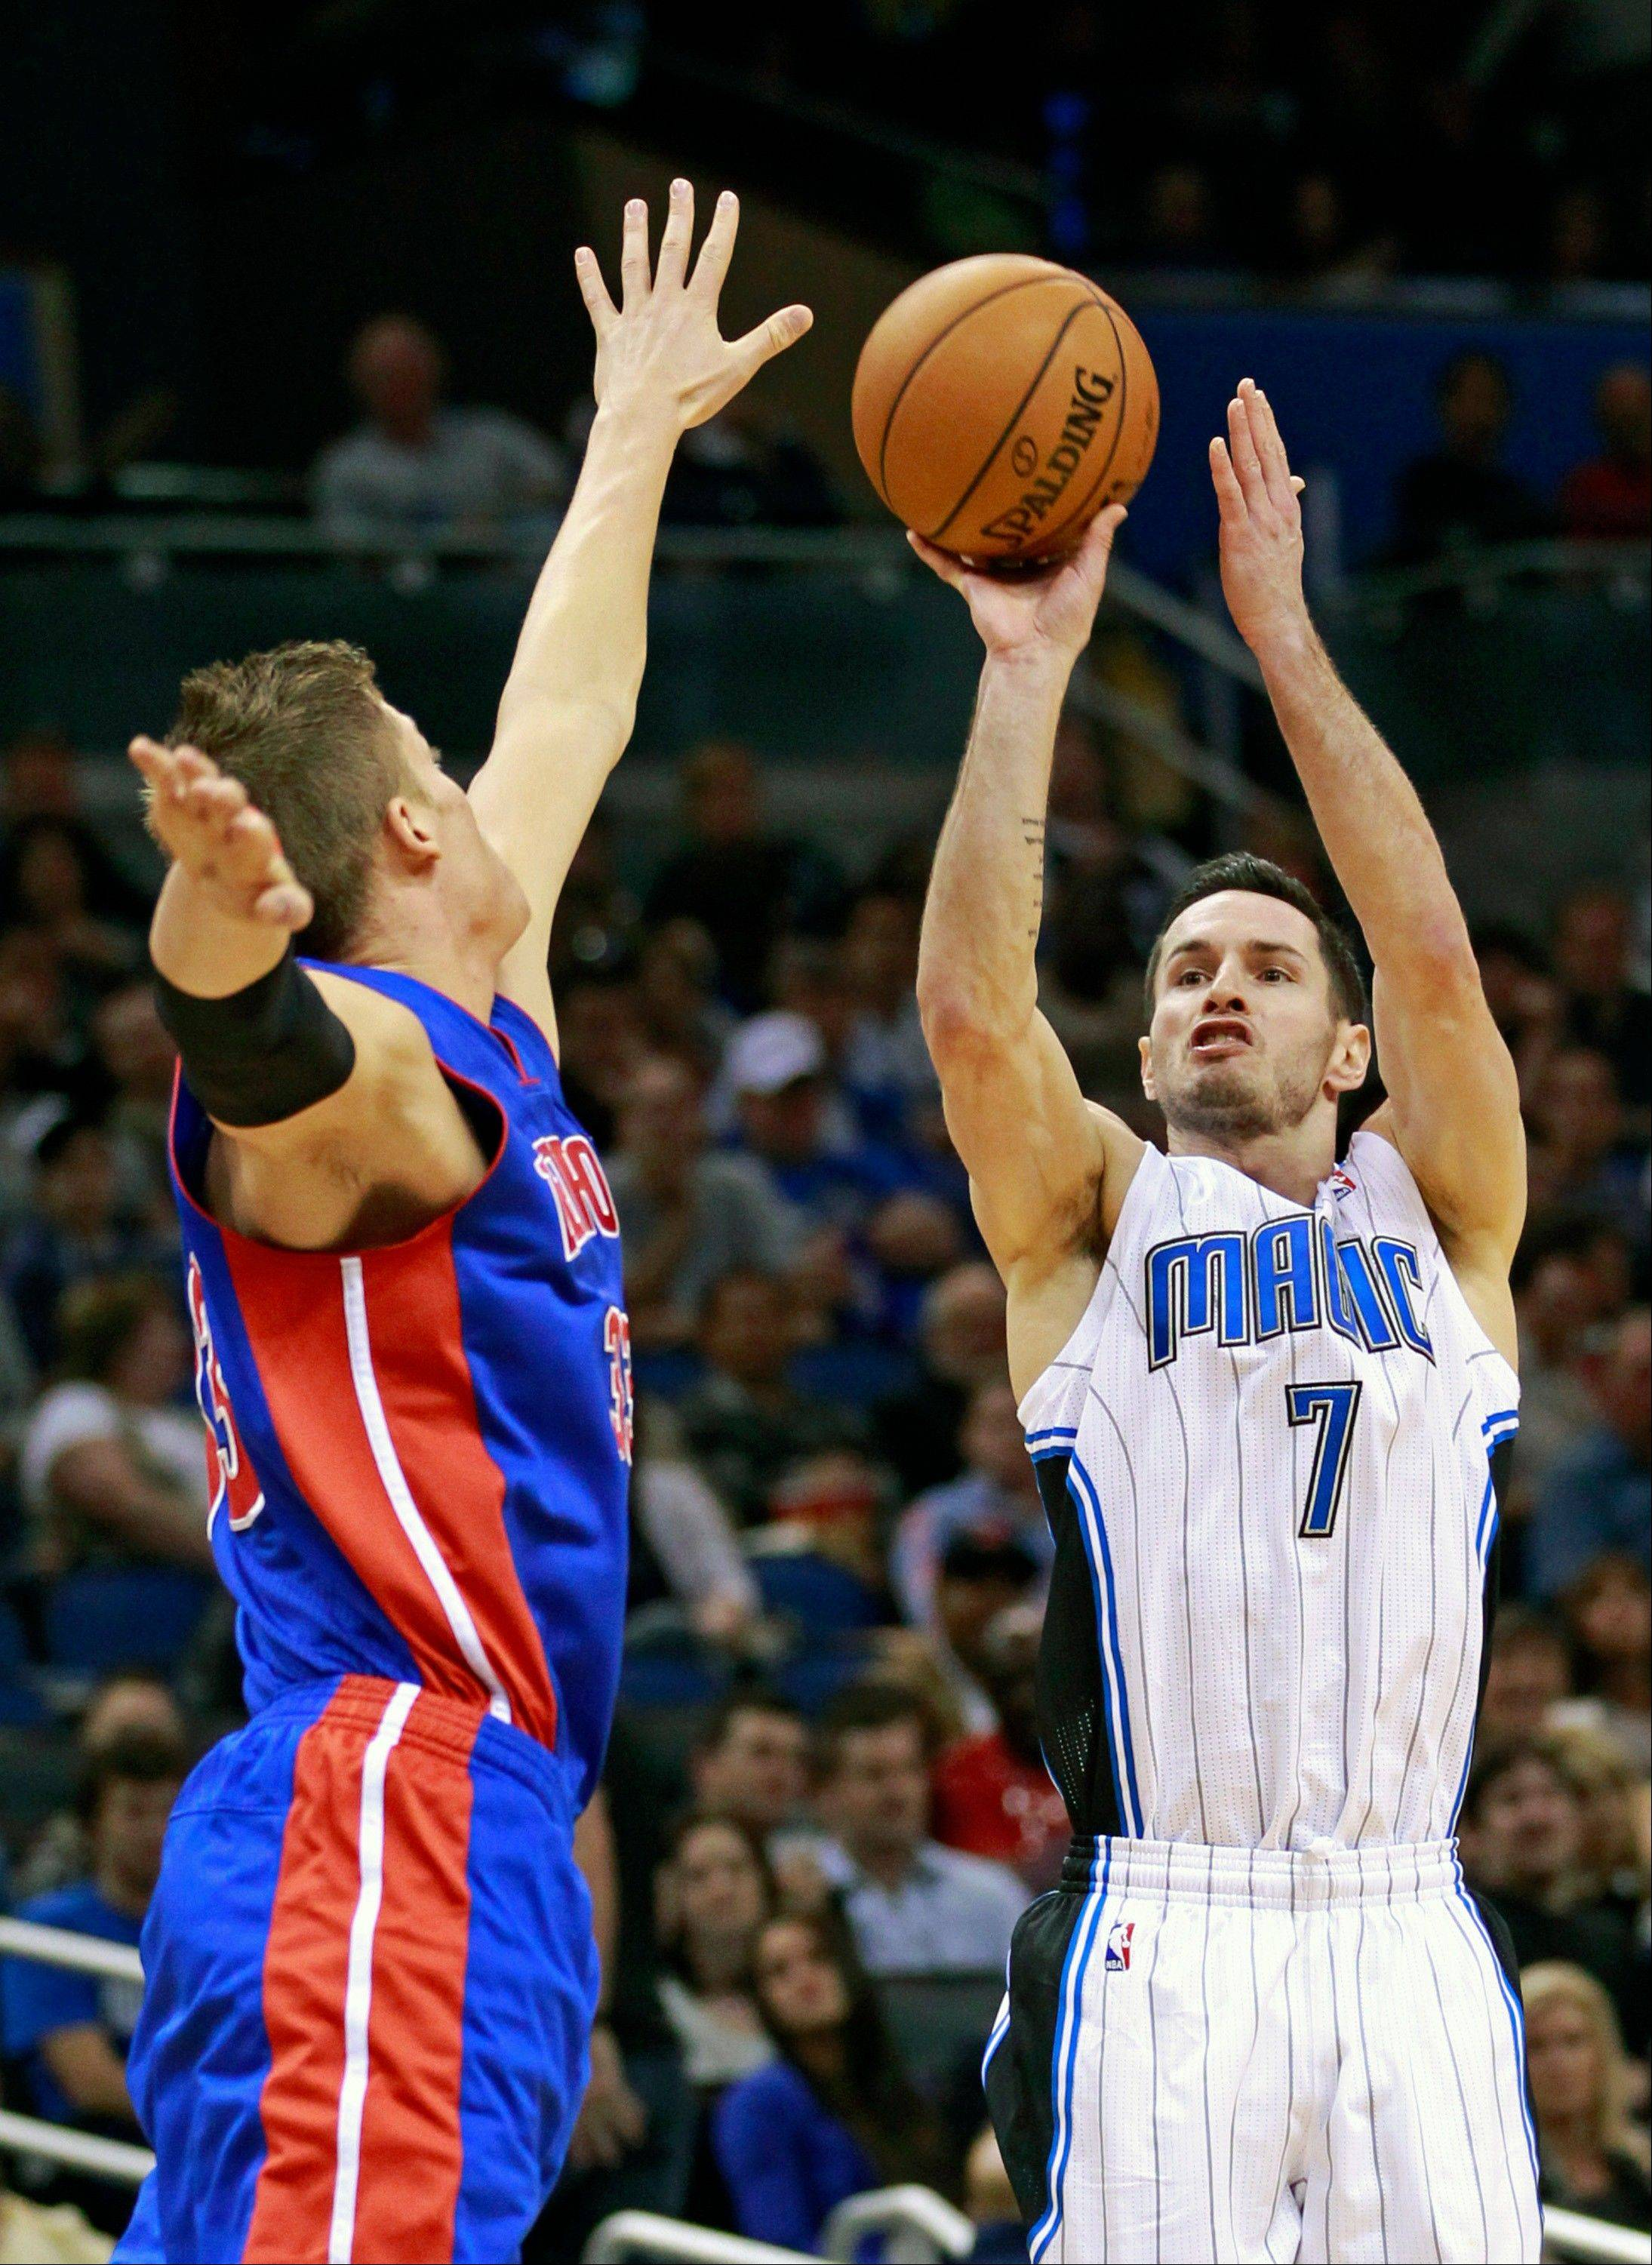 The Magic�s J.J. Redick takes a 3-point shot over the arms of Detroit�s Jonas Jerebko during the second half Wednesday in Orlando.